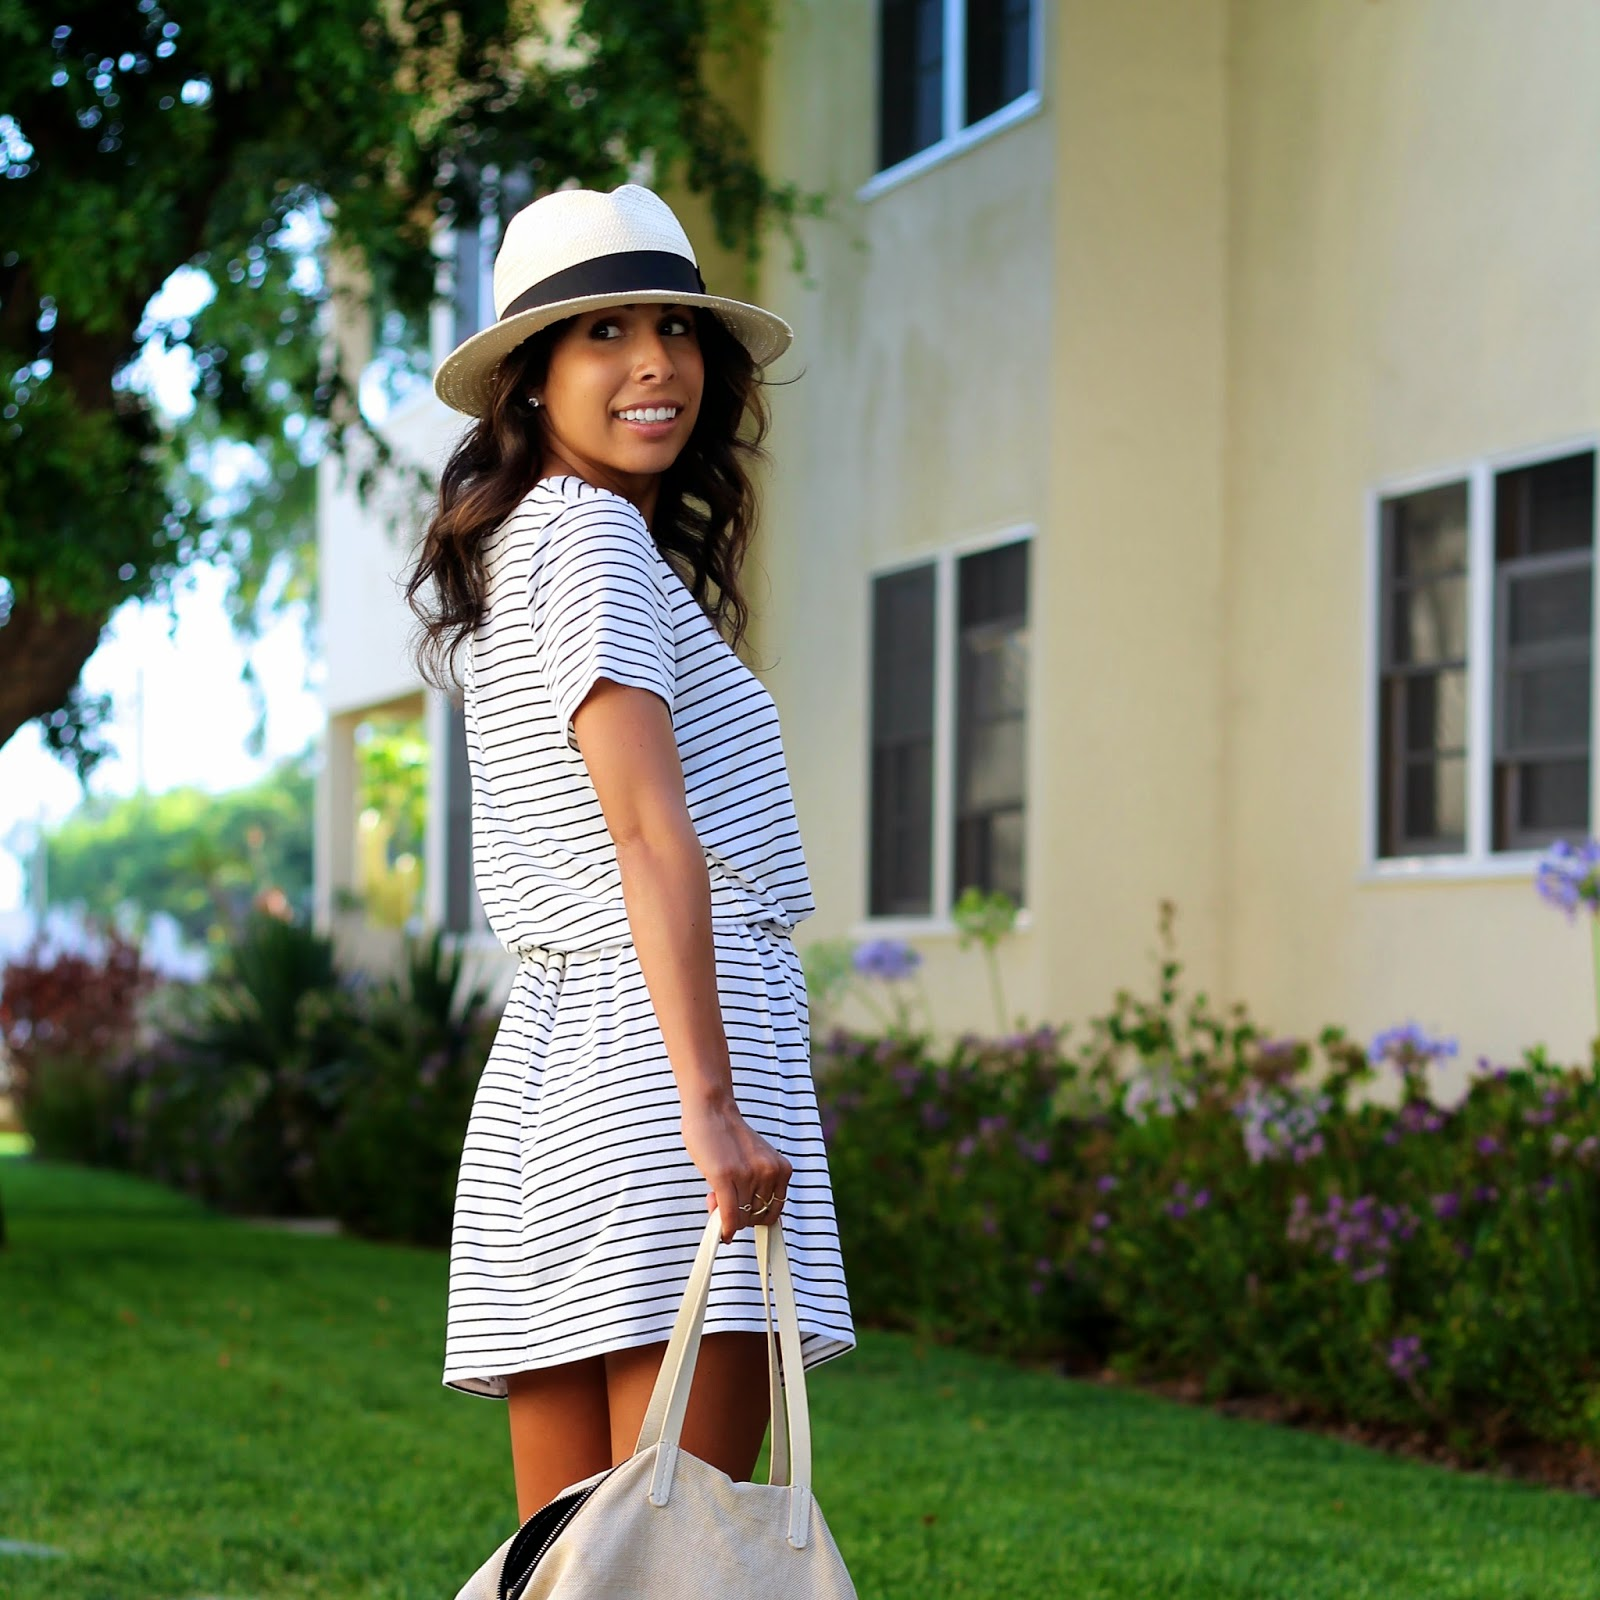 target style, striped dress, summer outfit ideas, beach outfit, panama hat, jcrew